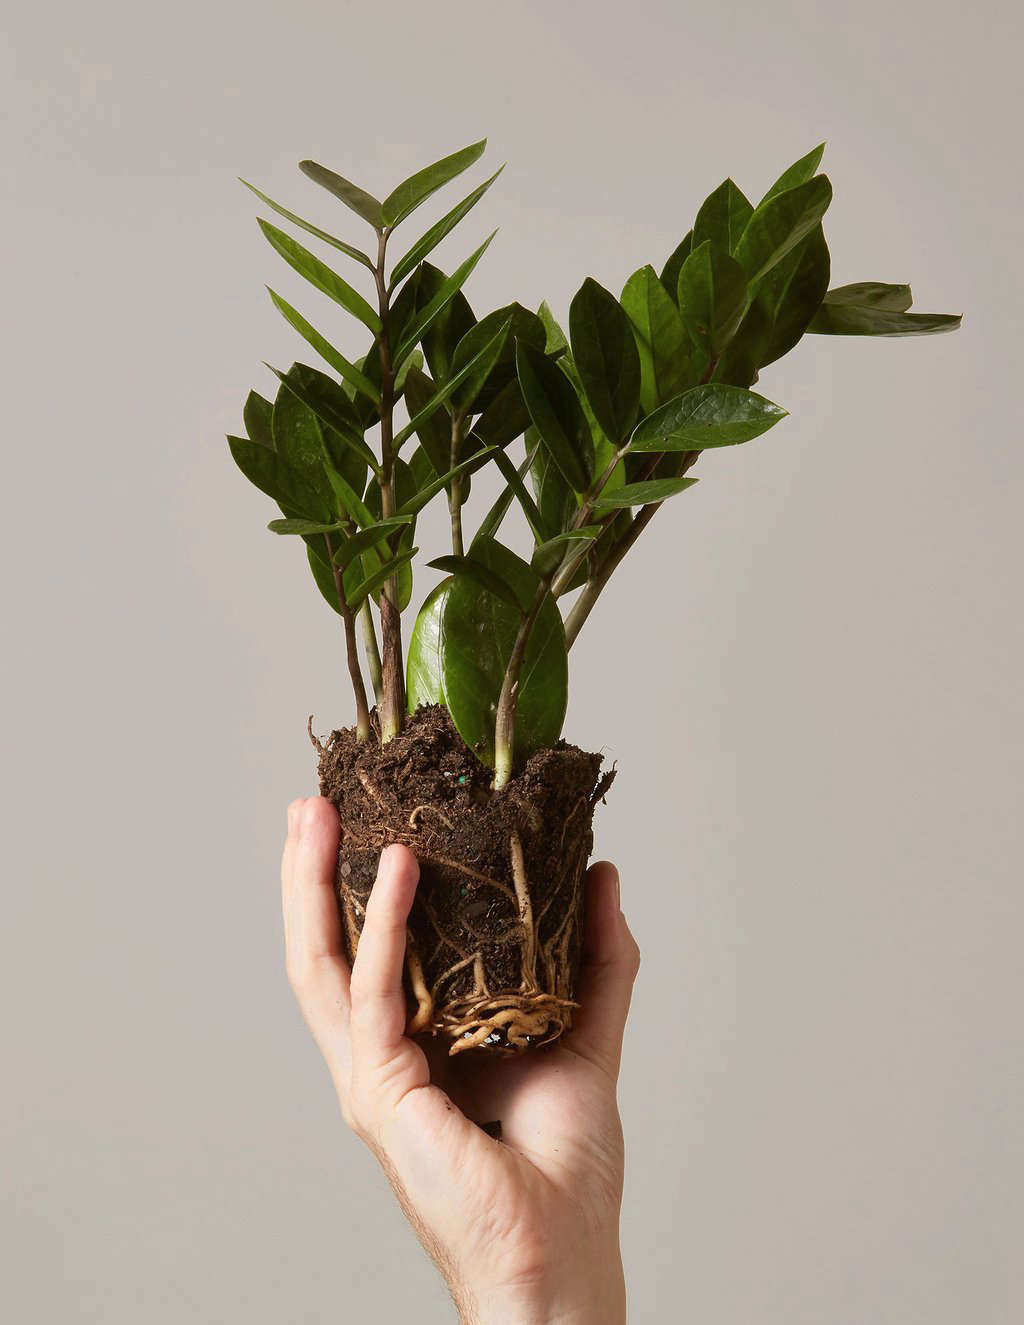 10 Things Nobody Tells You About Trendy Houseplants Gardenista